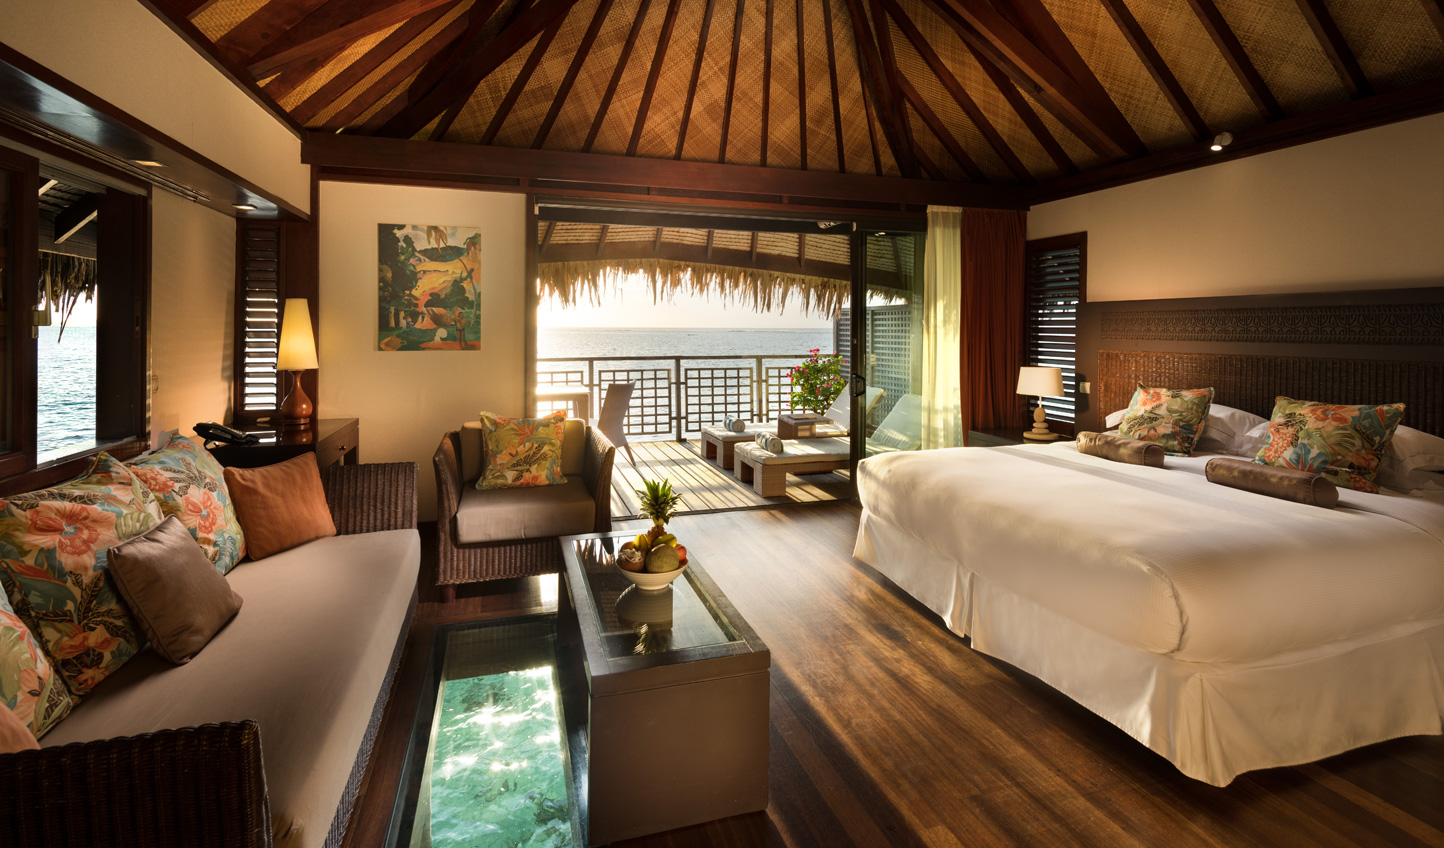 Sleep atop the ocean in one of the romantic overwater bungalows